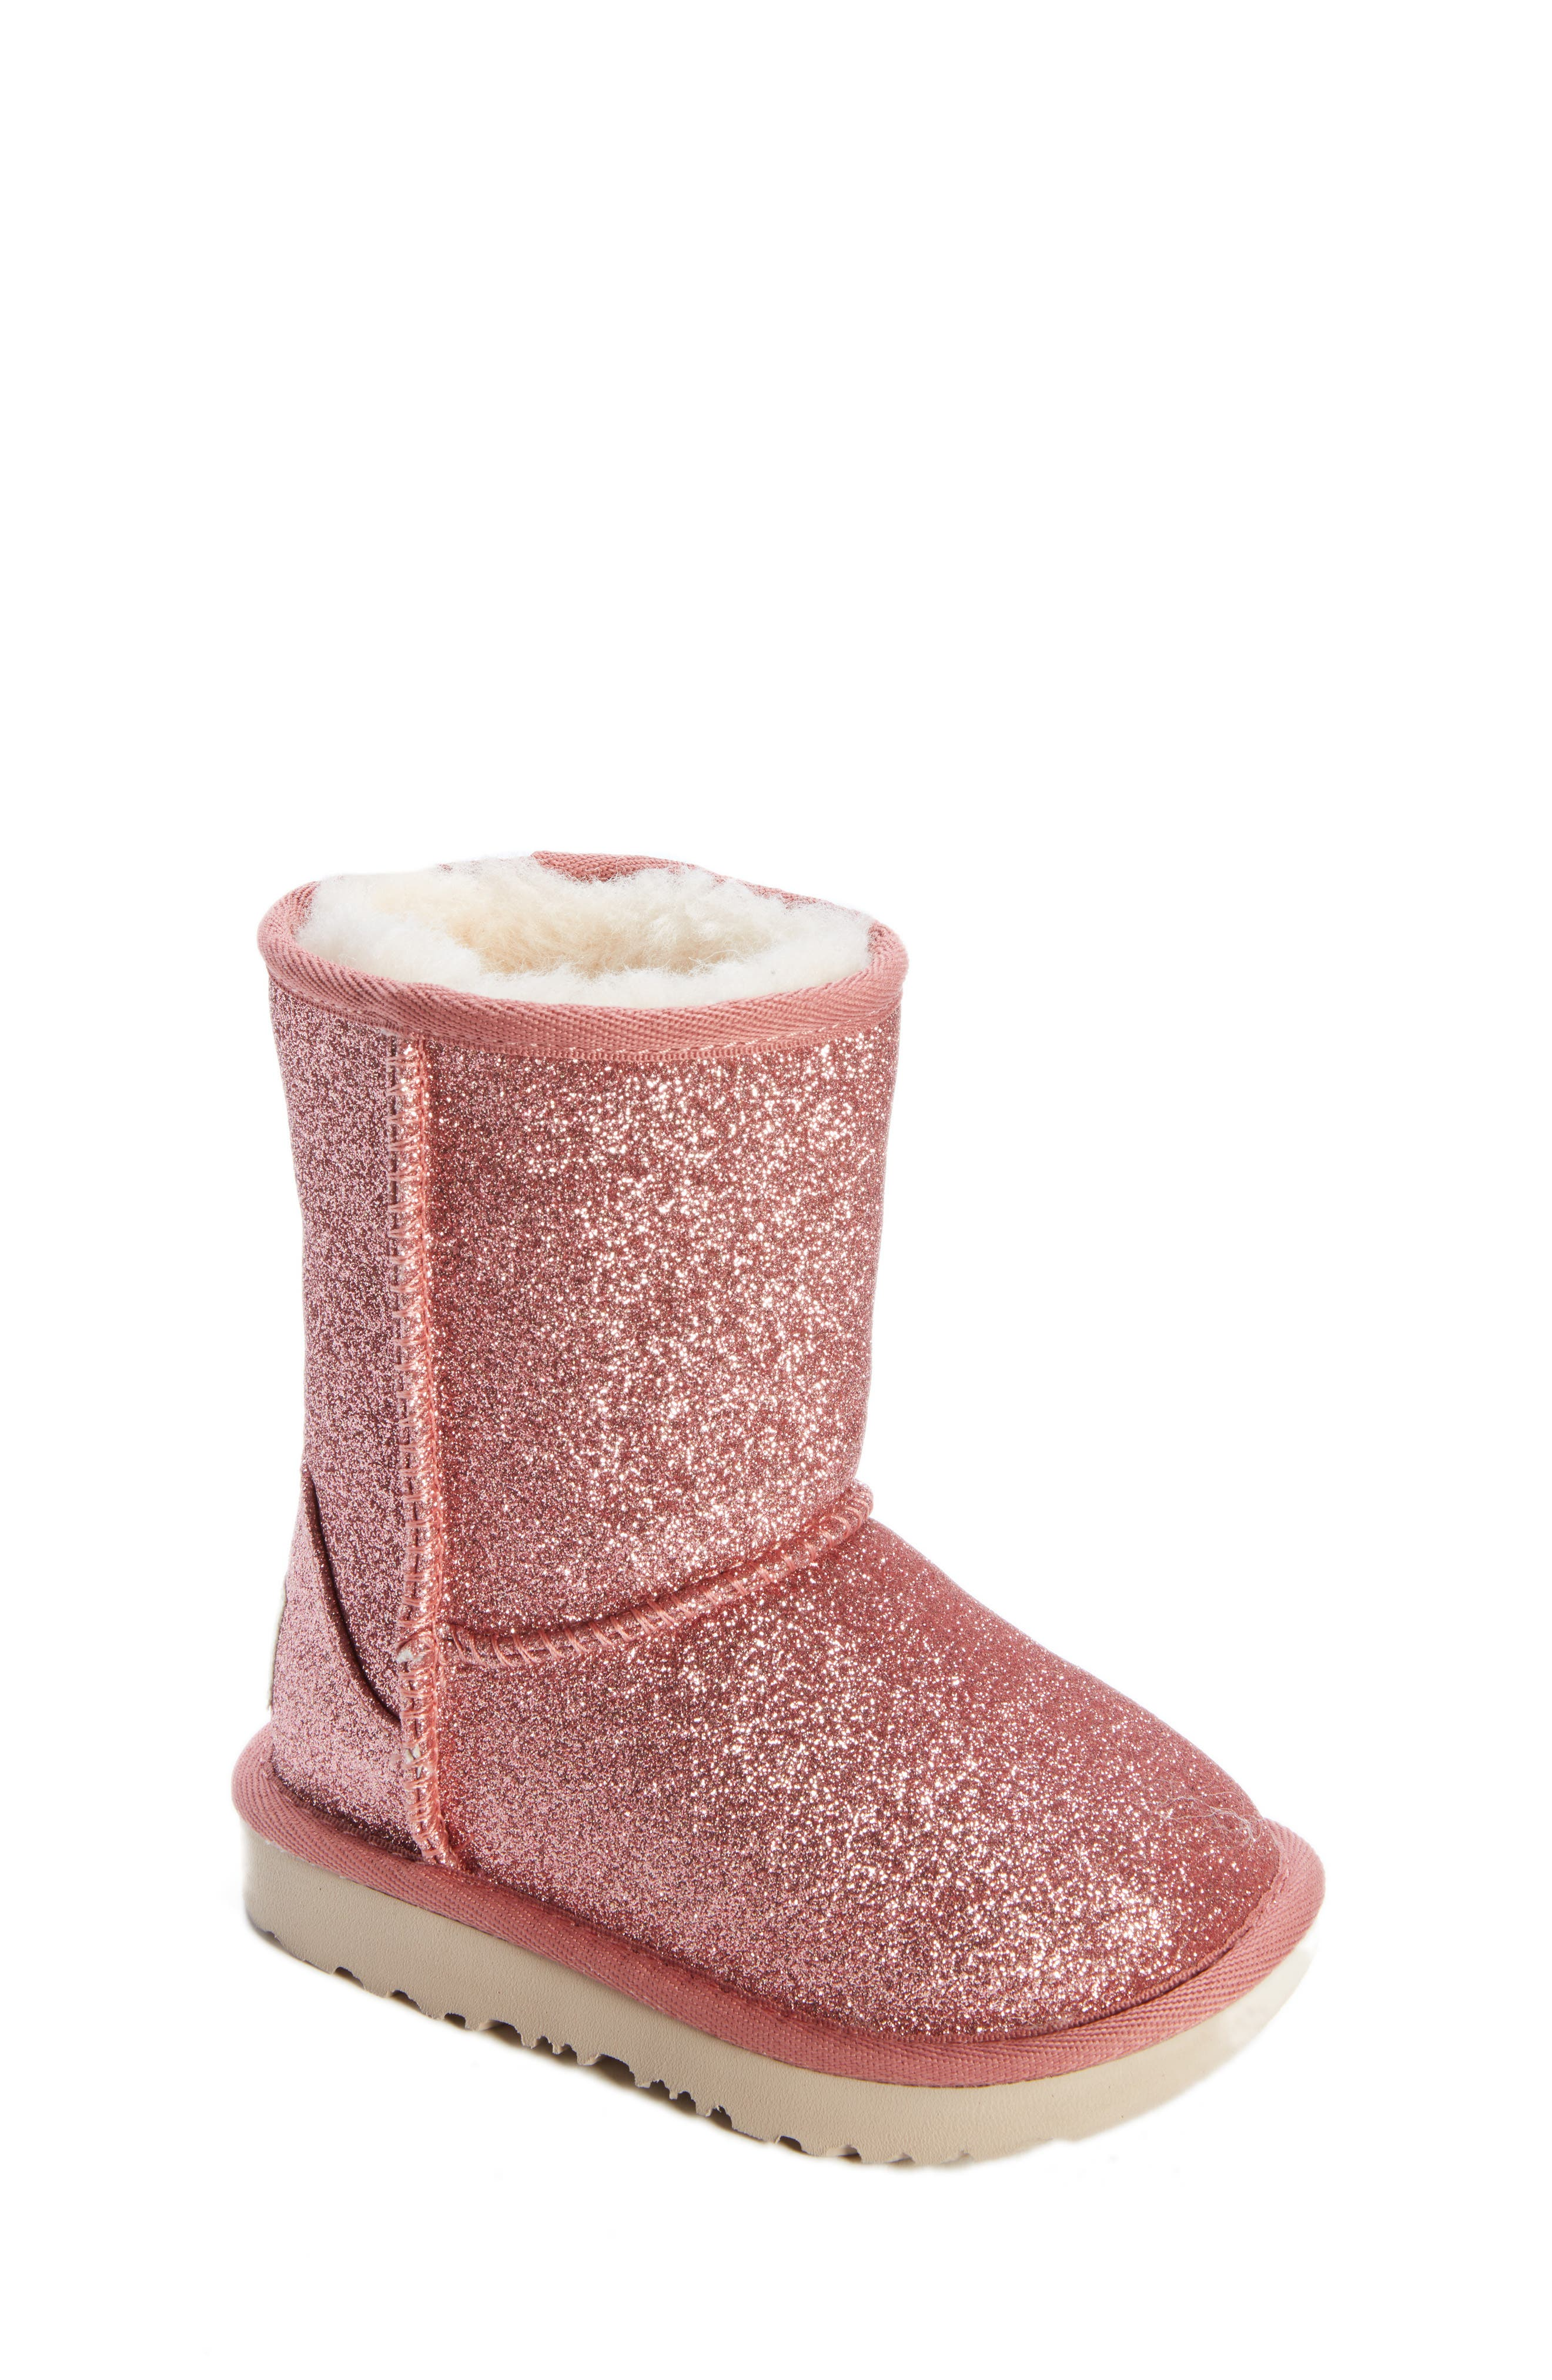 Image of UGG Classic Short II Genuine Shearling Lined Glitter Boot